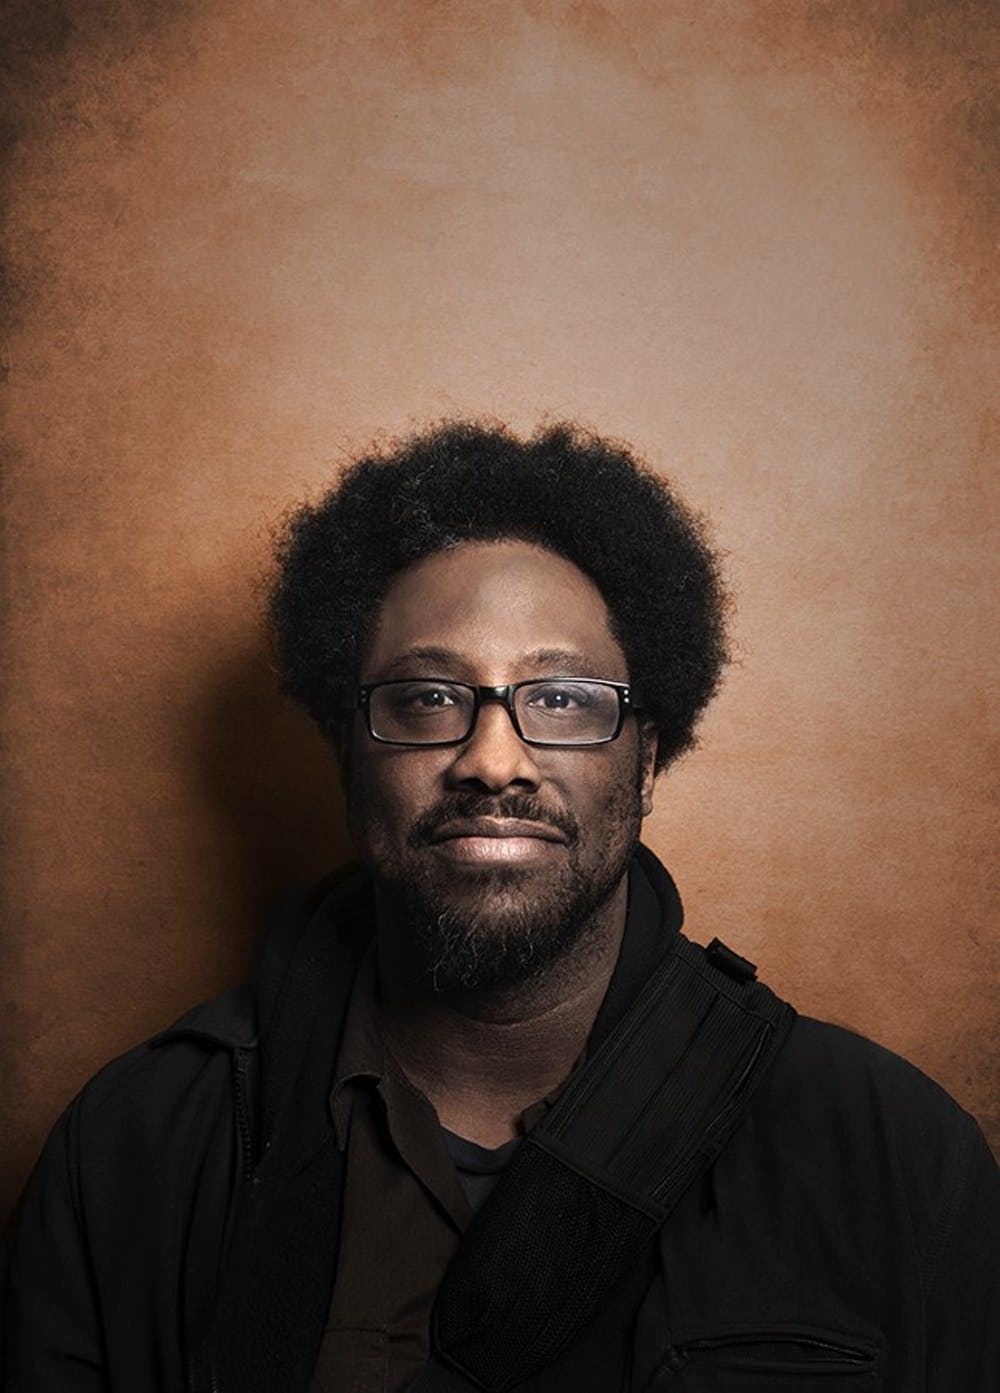 "<p>W. Kamau Bell&nbsp;will be coming to campus to talk about the impact of race in American culture. Bell is a critically acclaimed socio-political comedian and host of the Emmy Award-<a href=""http://www.imdb.com/name/nm4826314/awards"">nominated </a>series ""United Shades of America on CNN"".&nbsp;</p>"